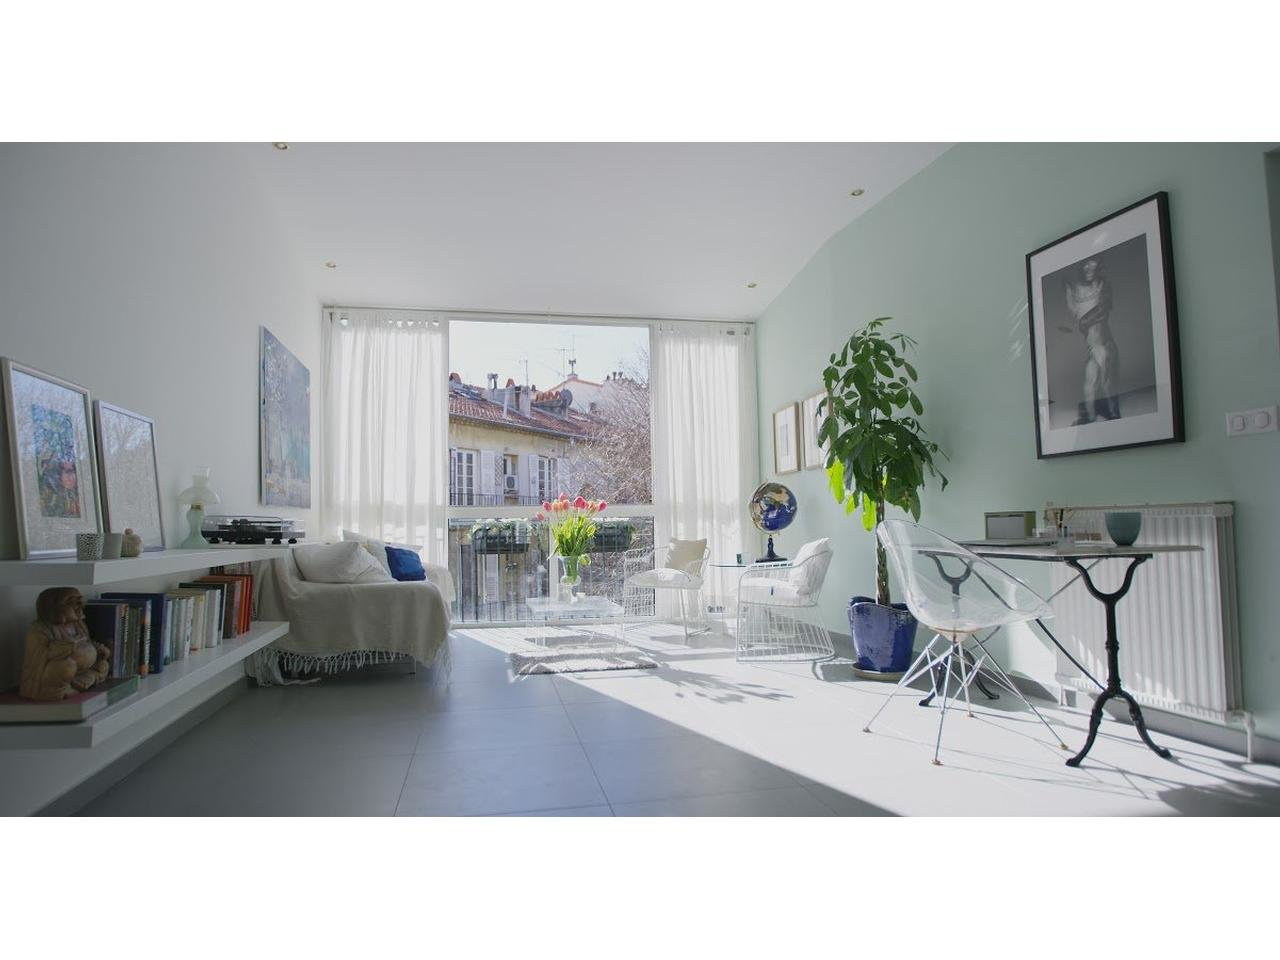 Appartement  3 Rooms 58.05m2  for sale   380 000 €